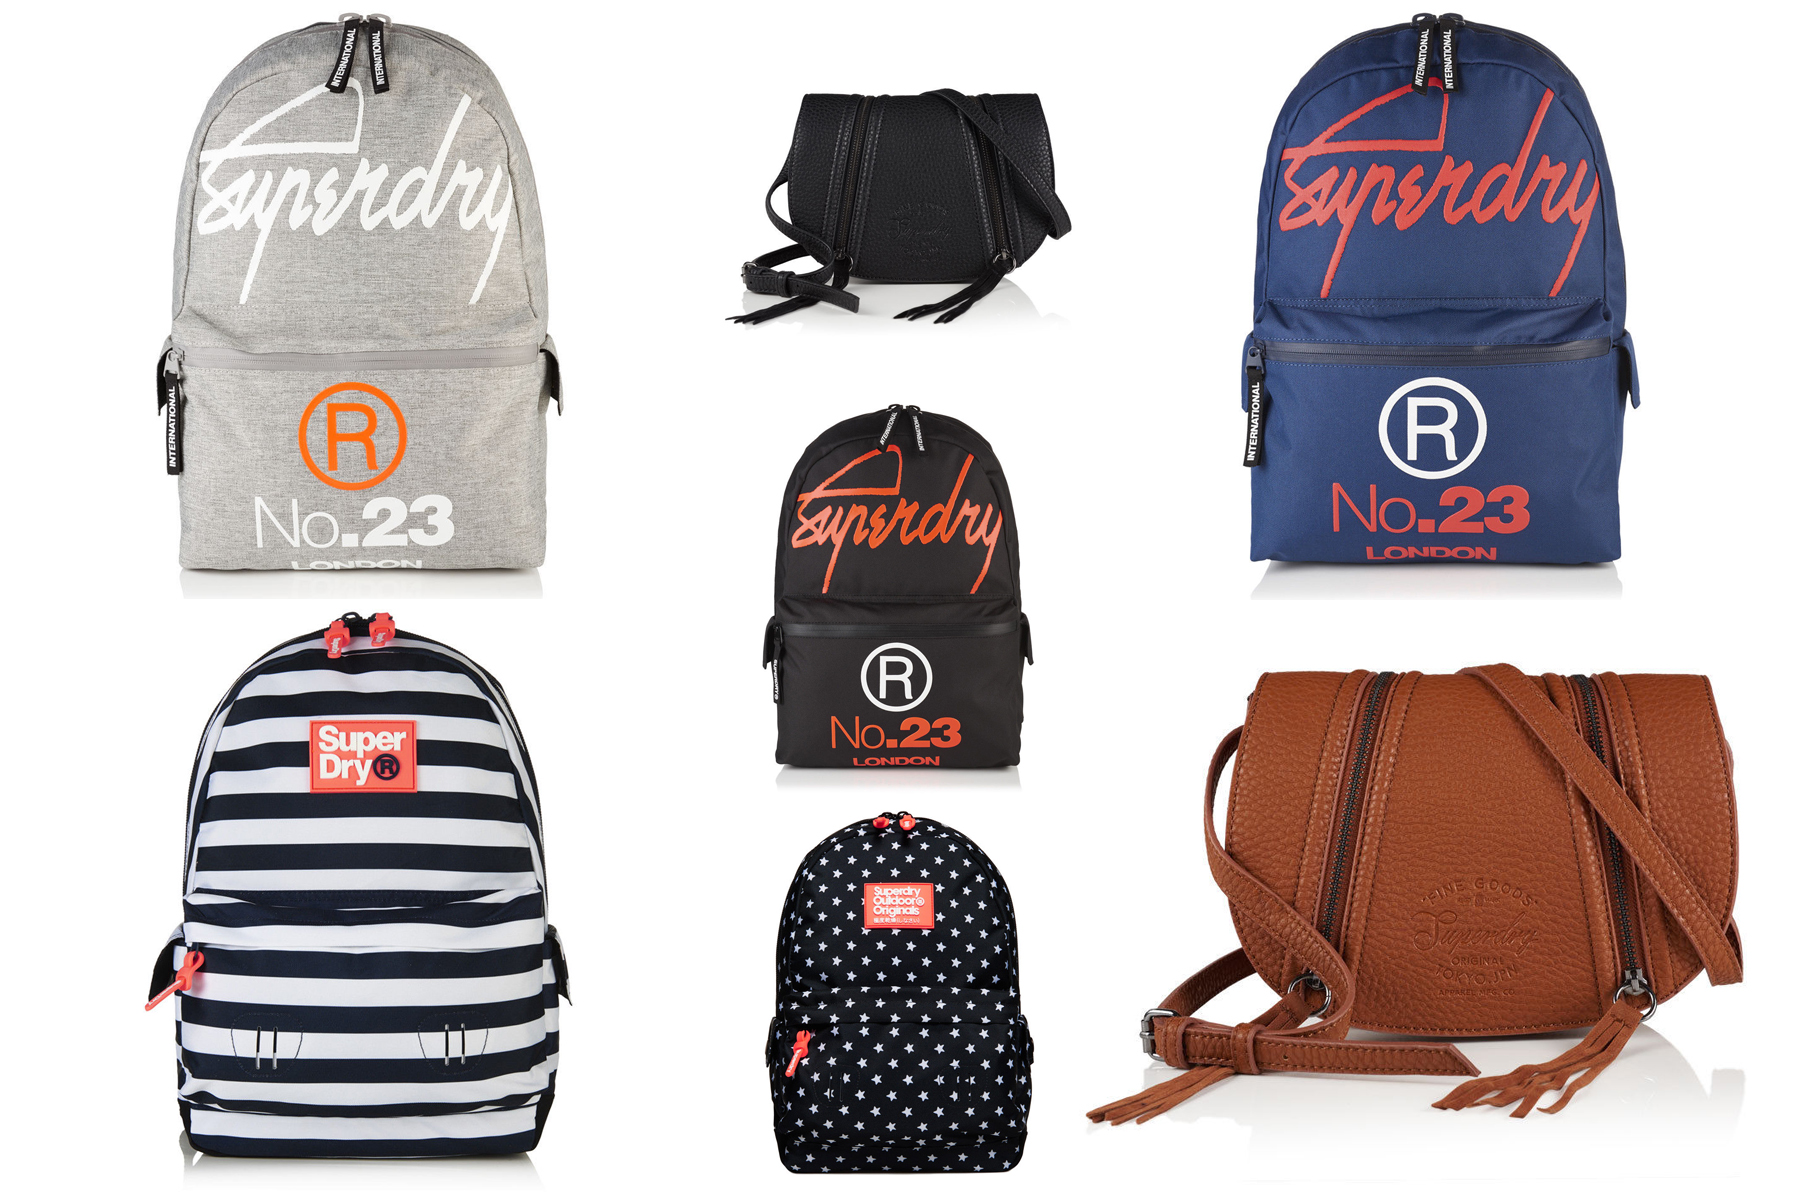 Sentinel New Superdry Bags Selection Various Styles Colours 2304